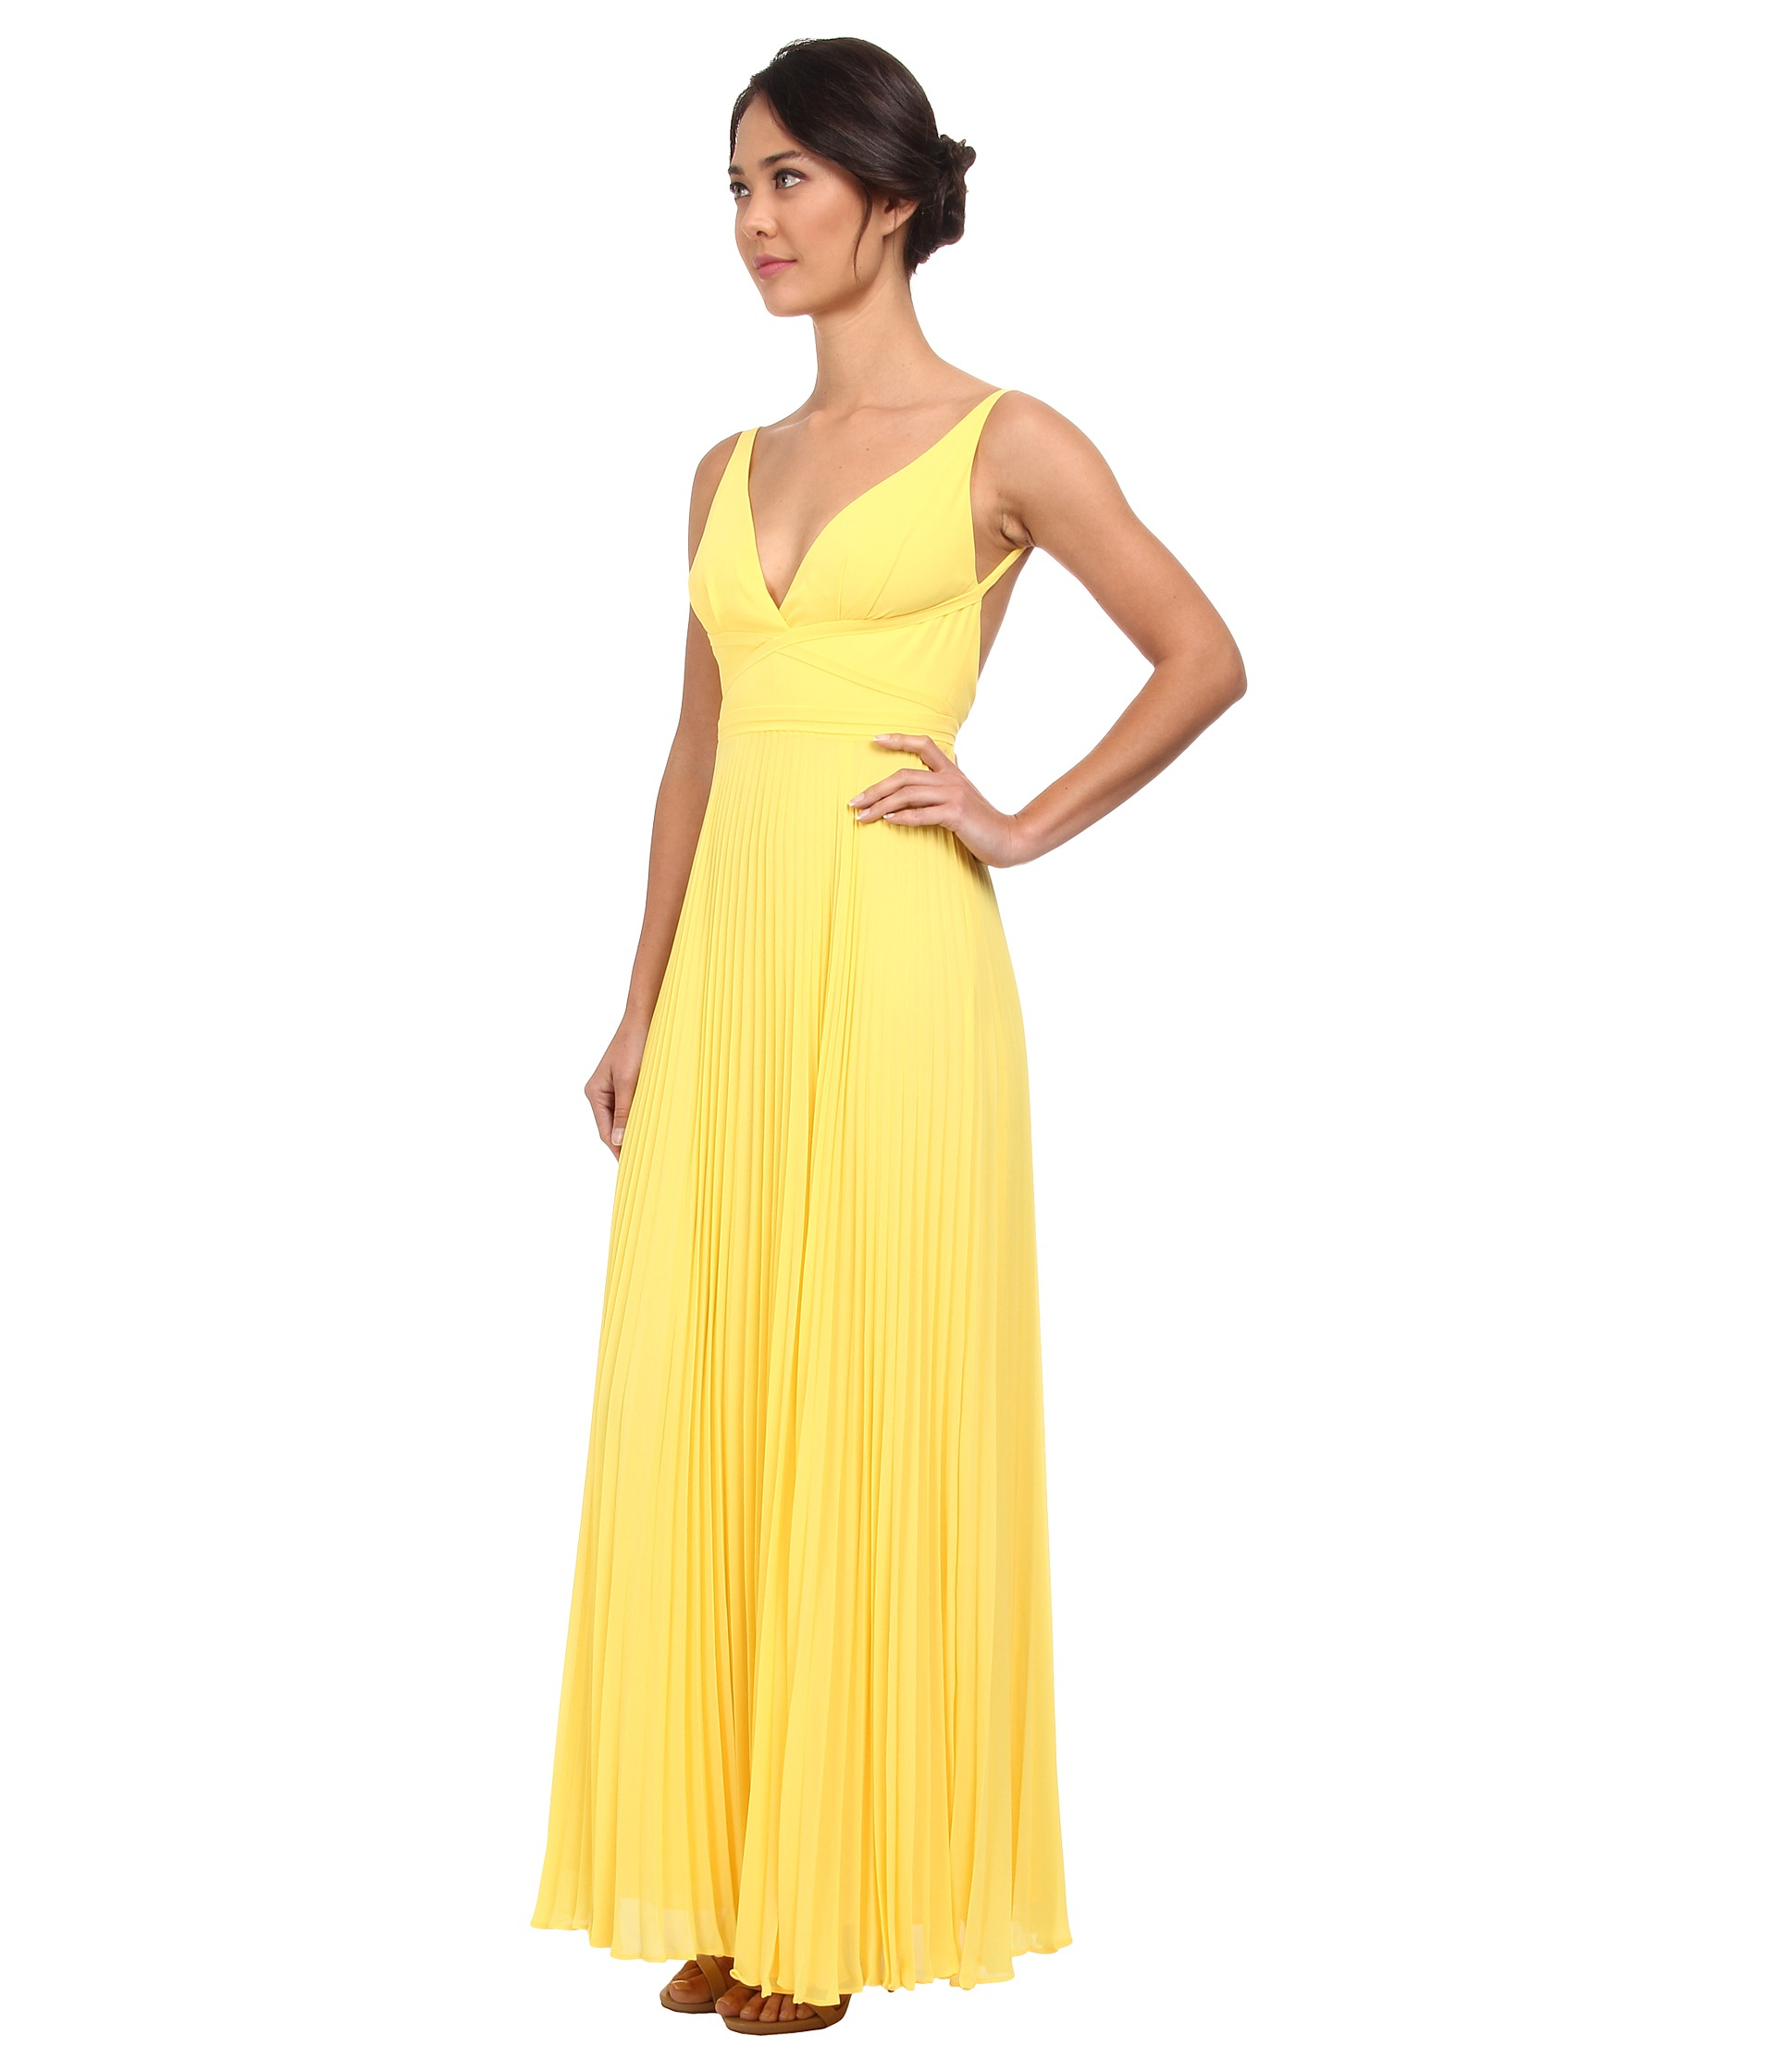 64e820b44 Laundry by Shelli Segal Pleated Chiffon Open Back Gown in Yellow - Lyst